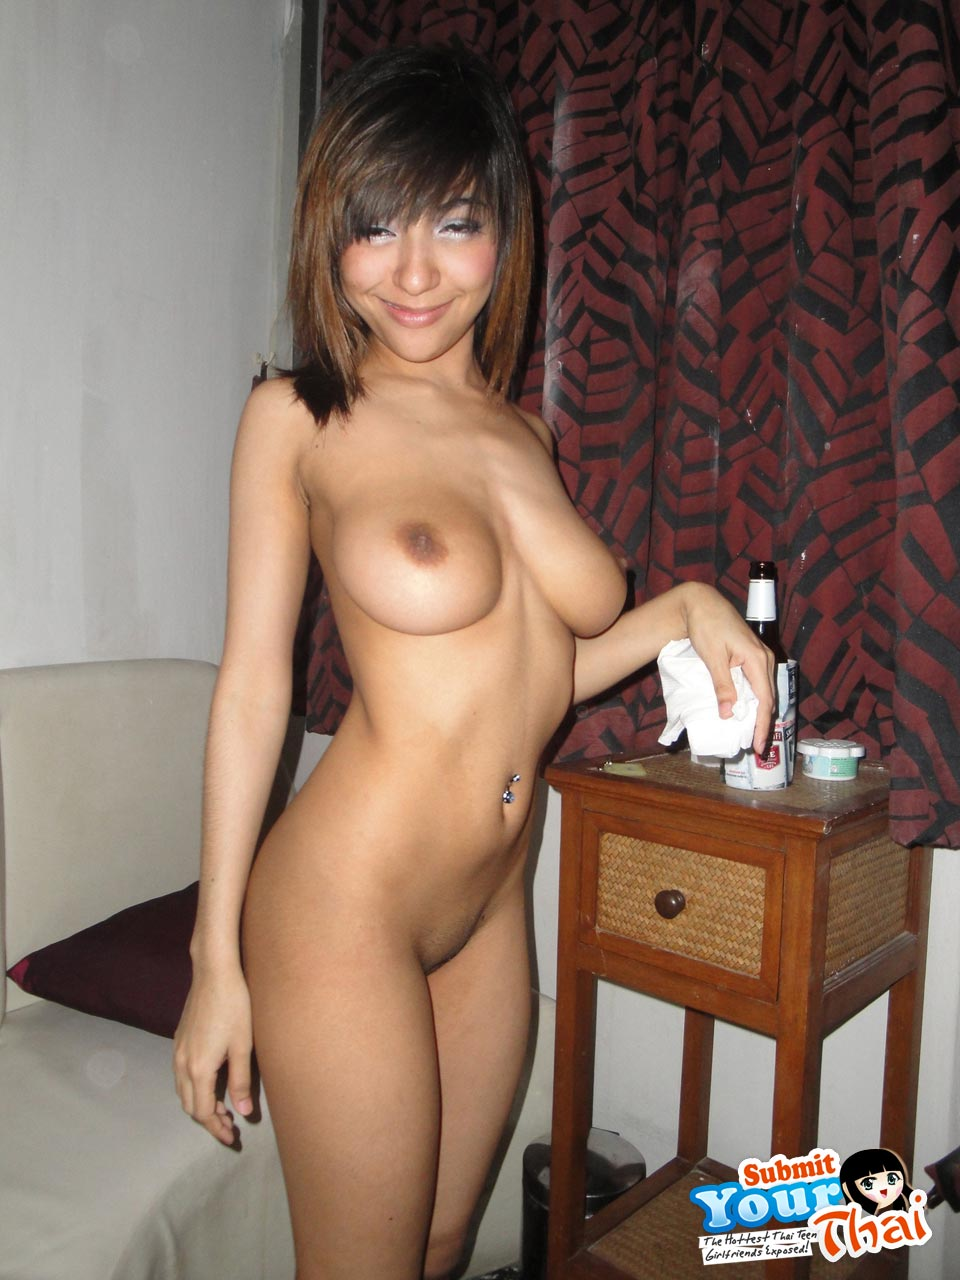 Remarkable, rather Pattaya sex girl nude fuck agree